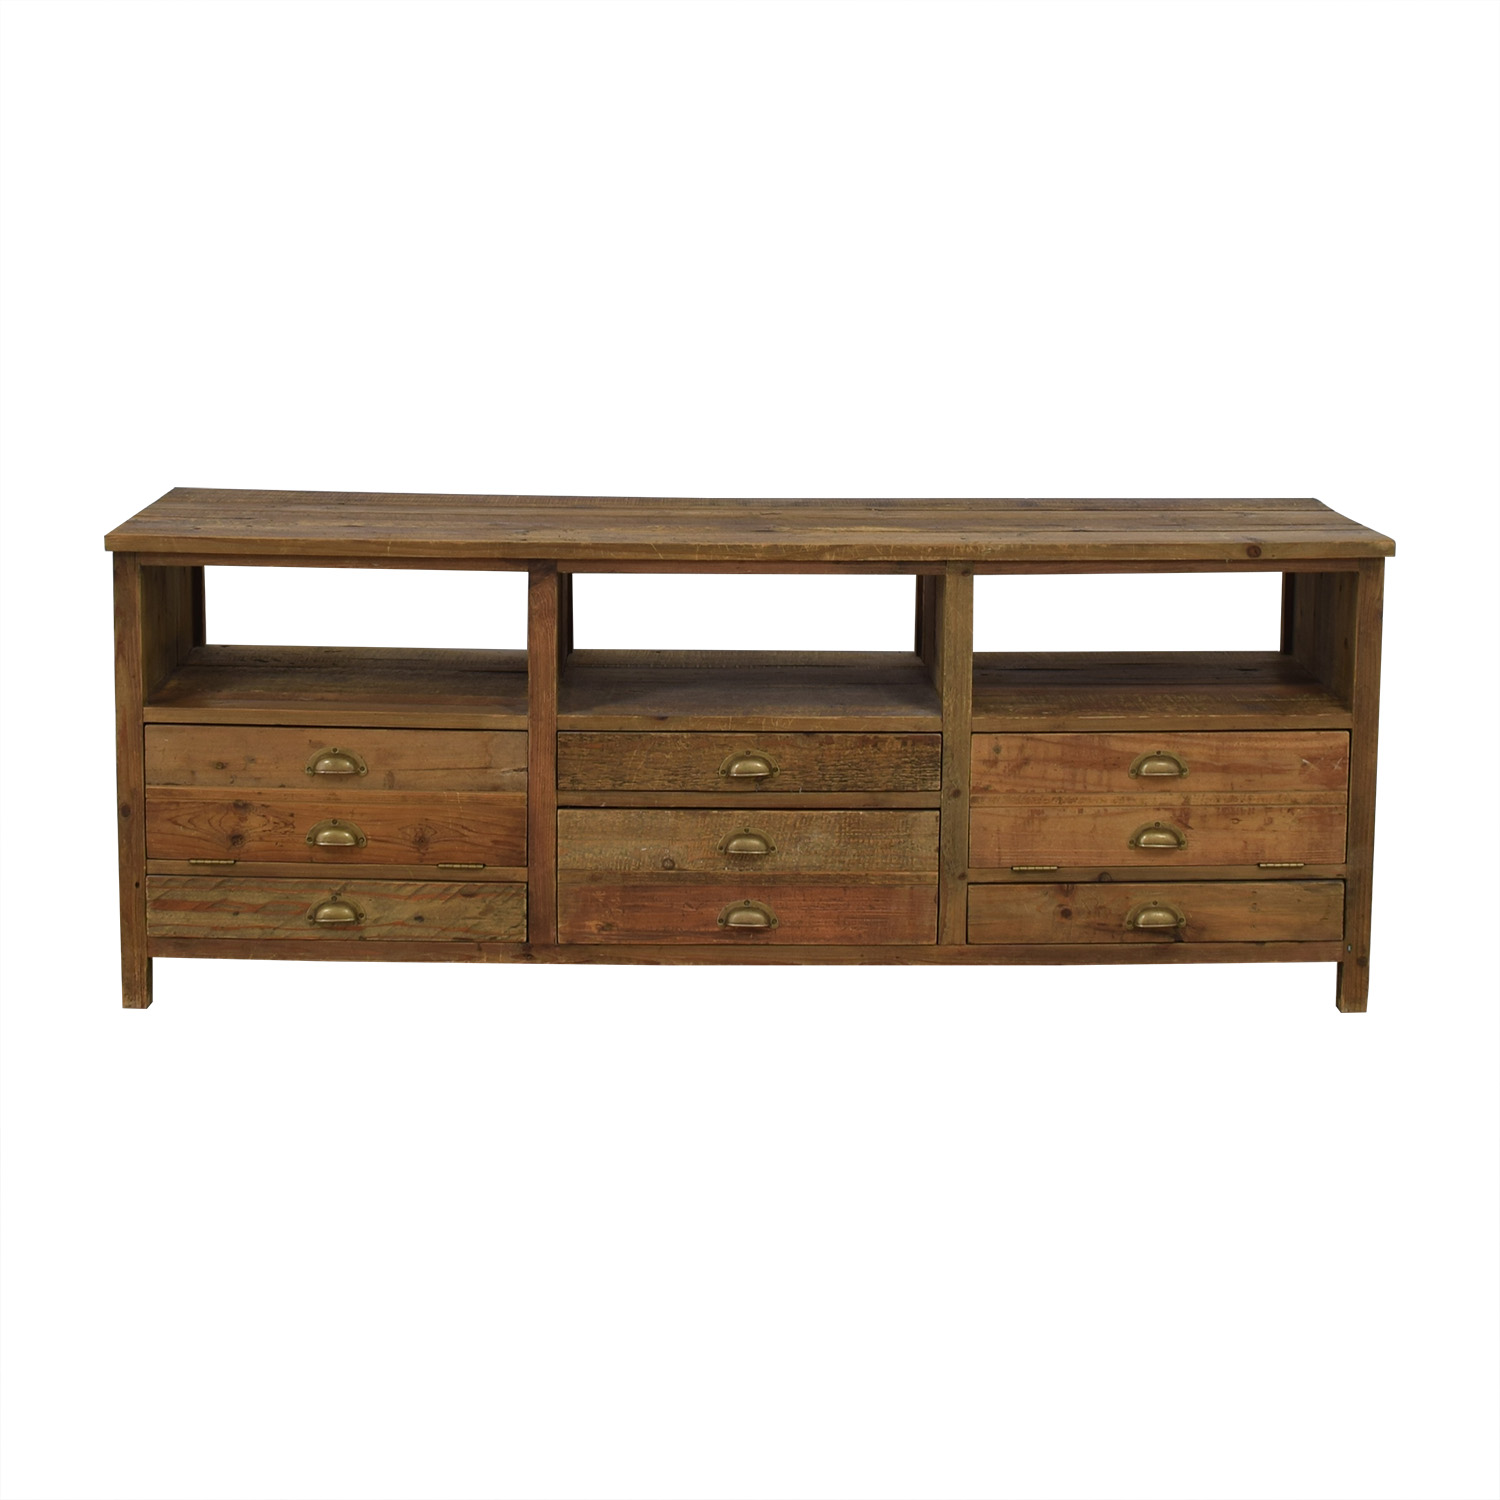 Mecox Gardens Mecox Gardens Grand Entertainment Rustic Wood Console price